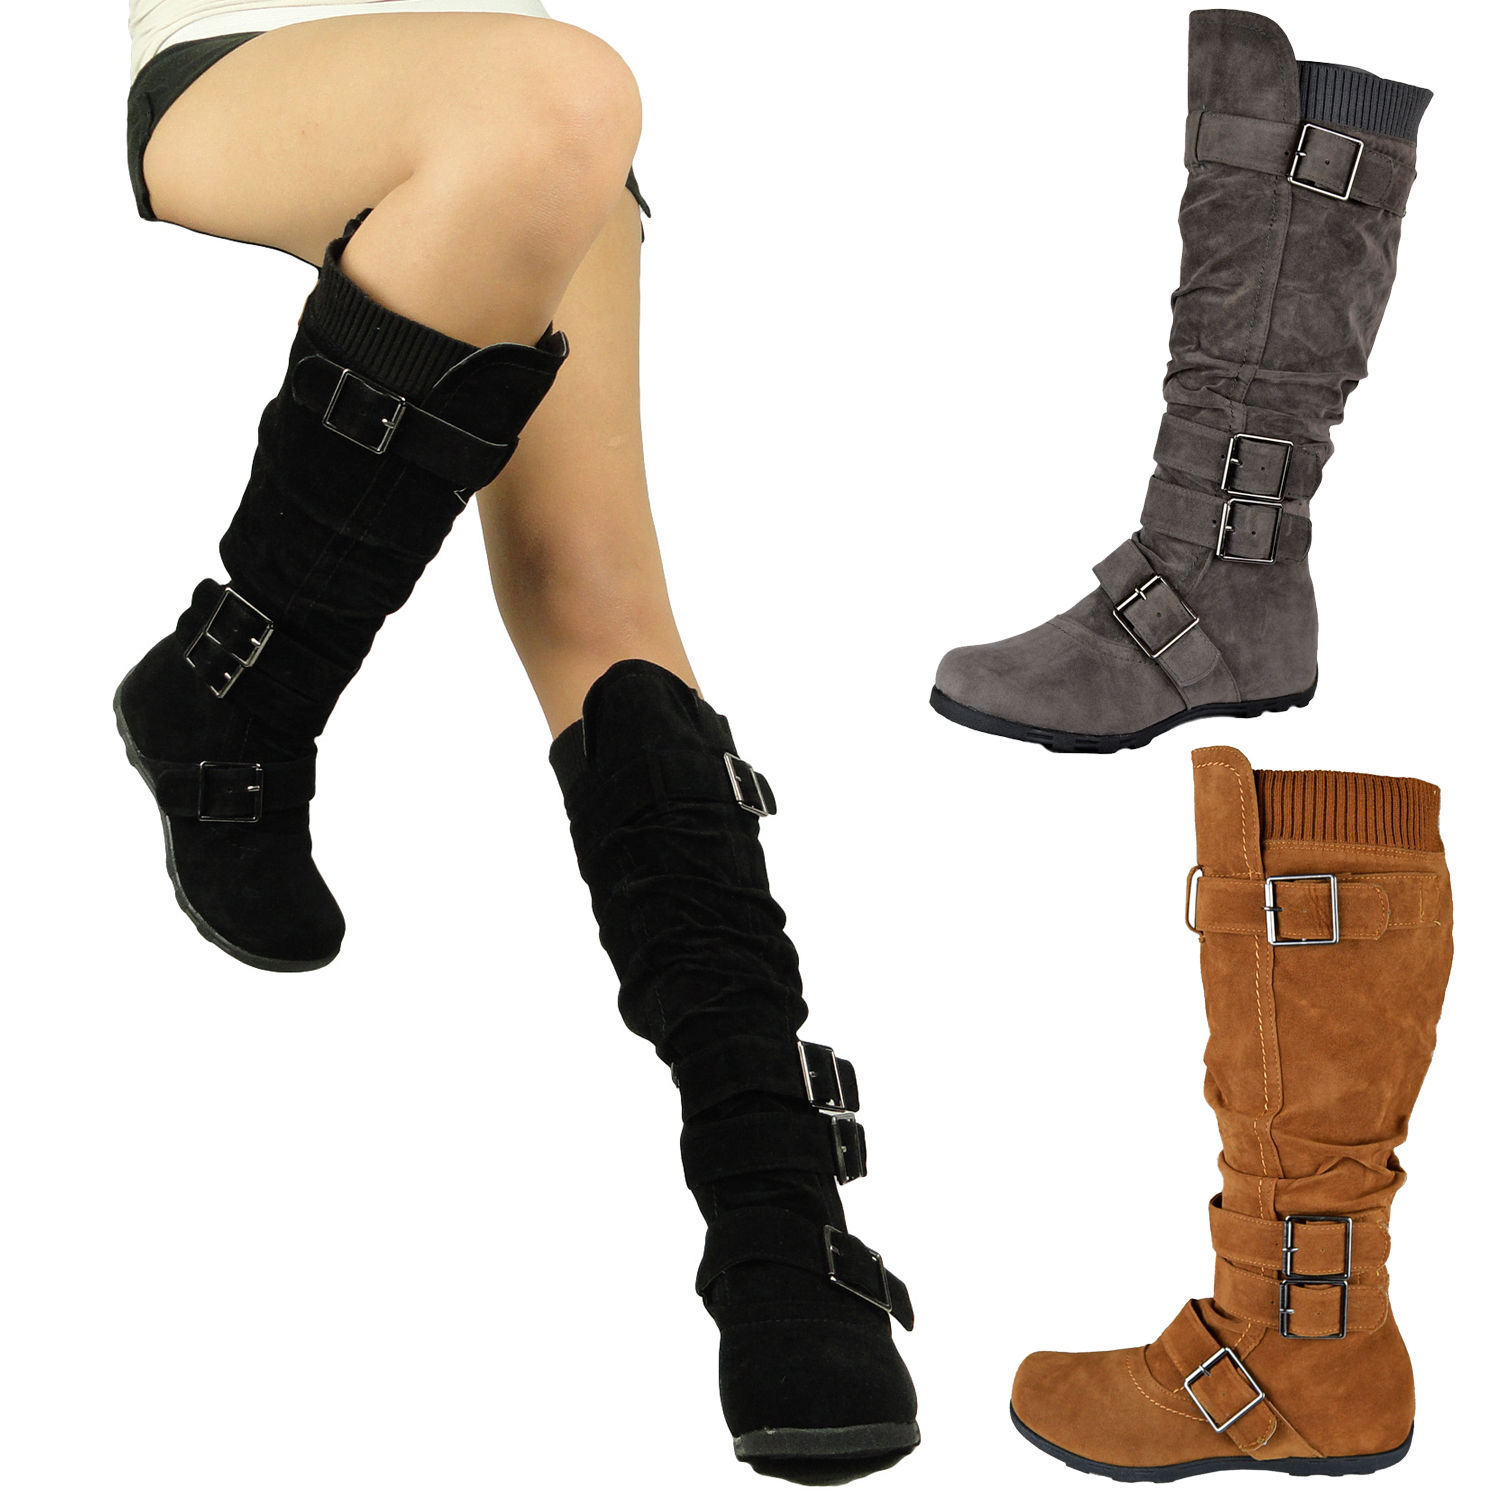 Women Flat Knee High Boots Adjustable Straps Suede Comfort Winter ...